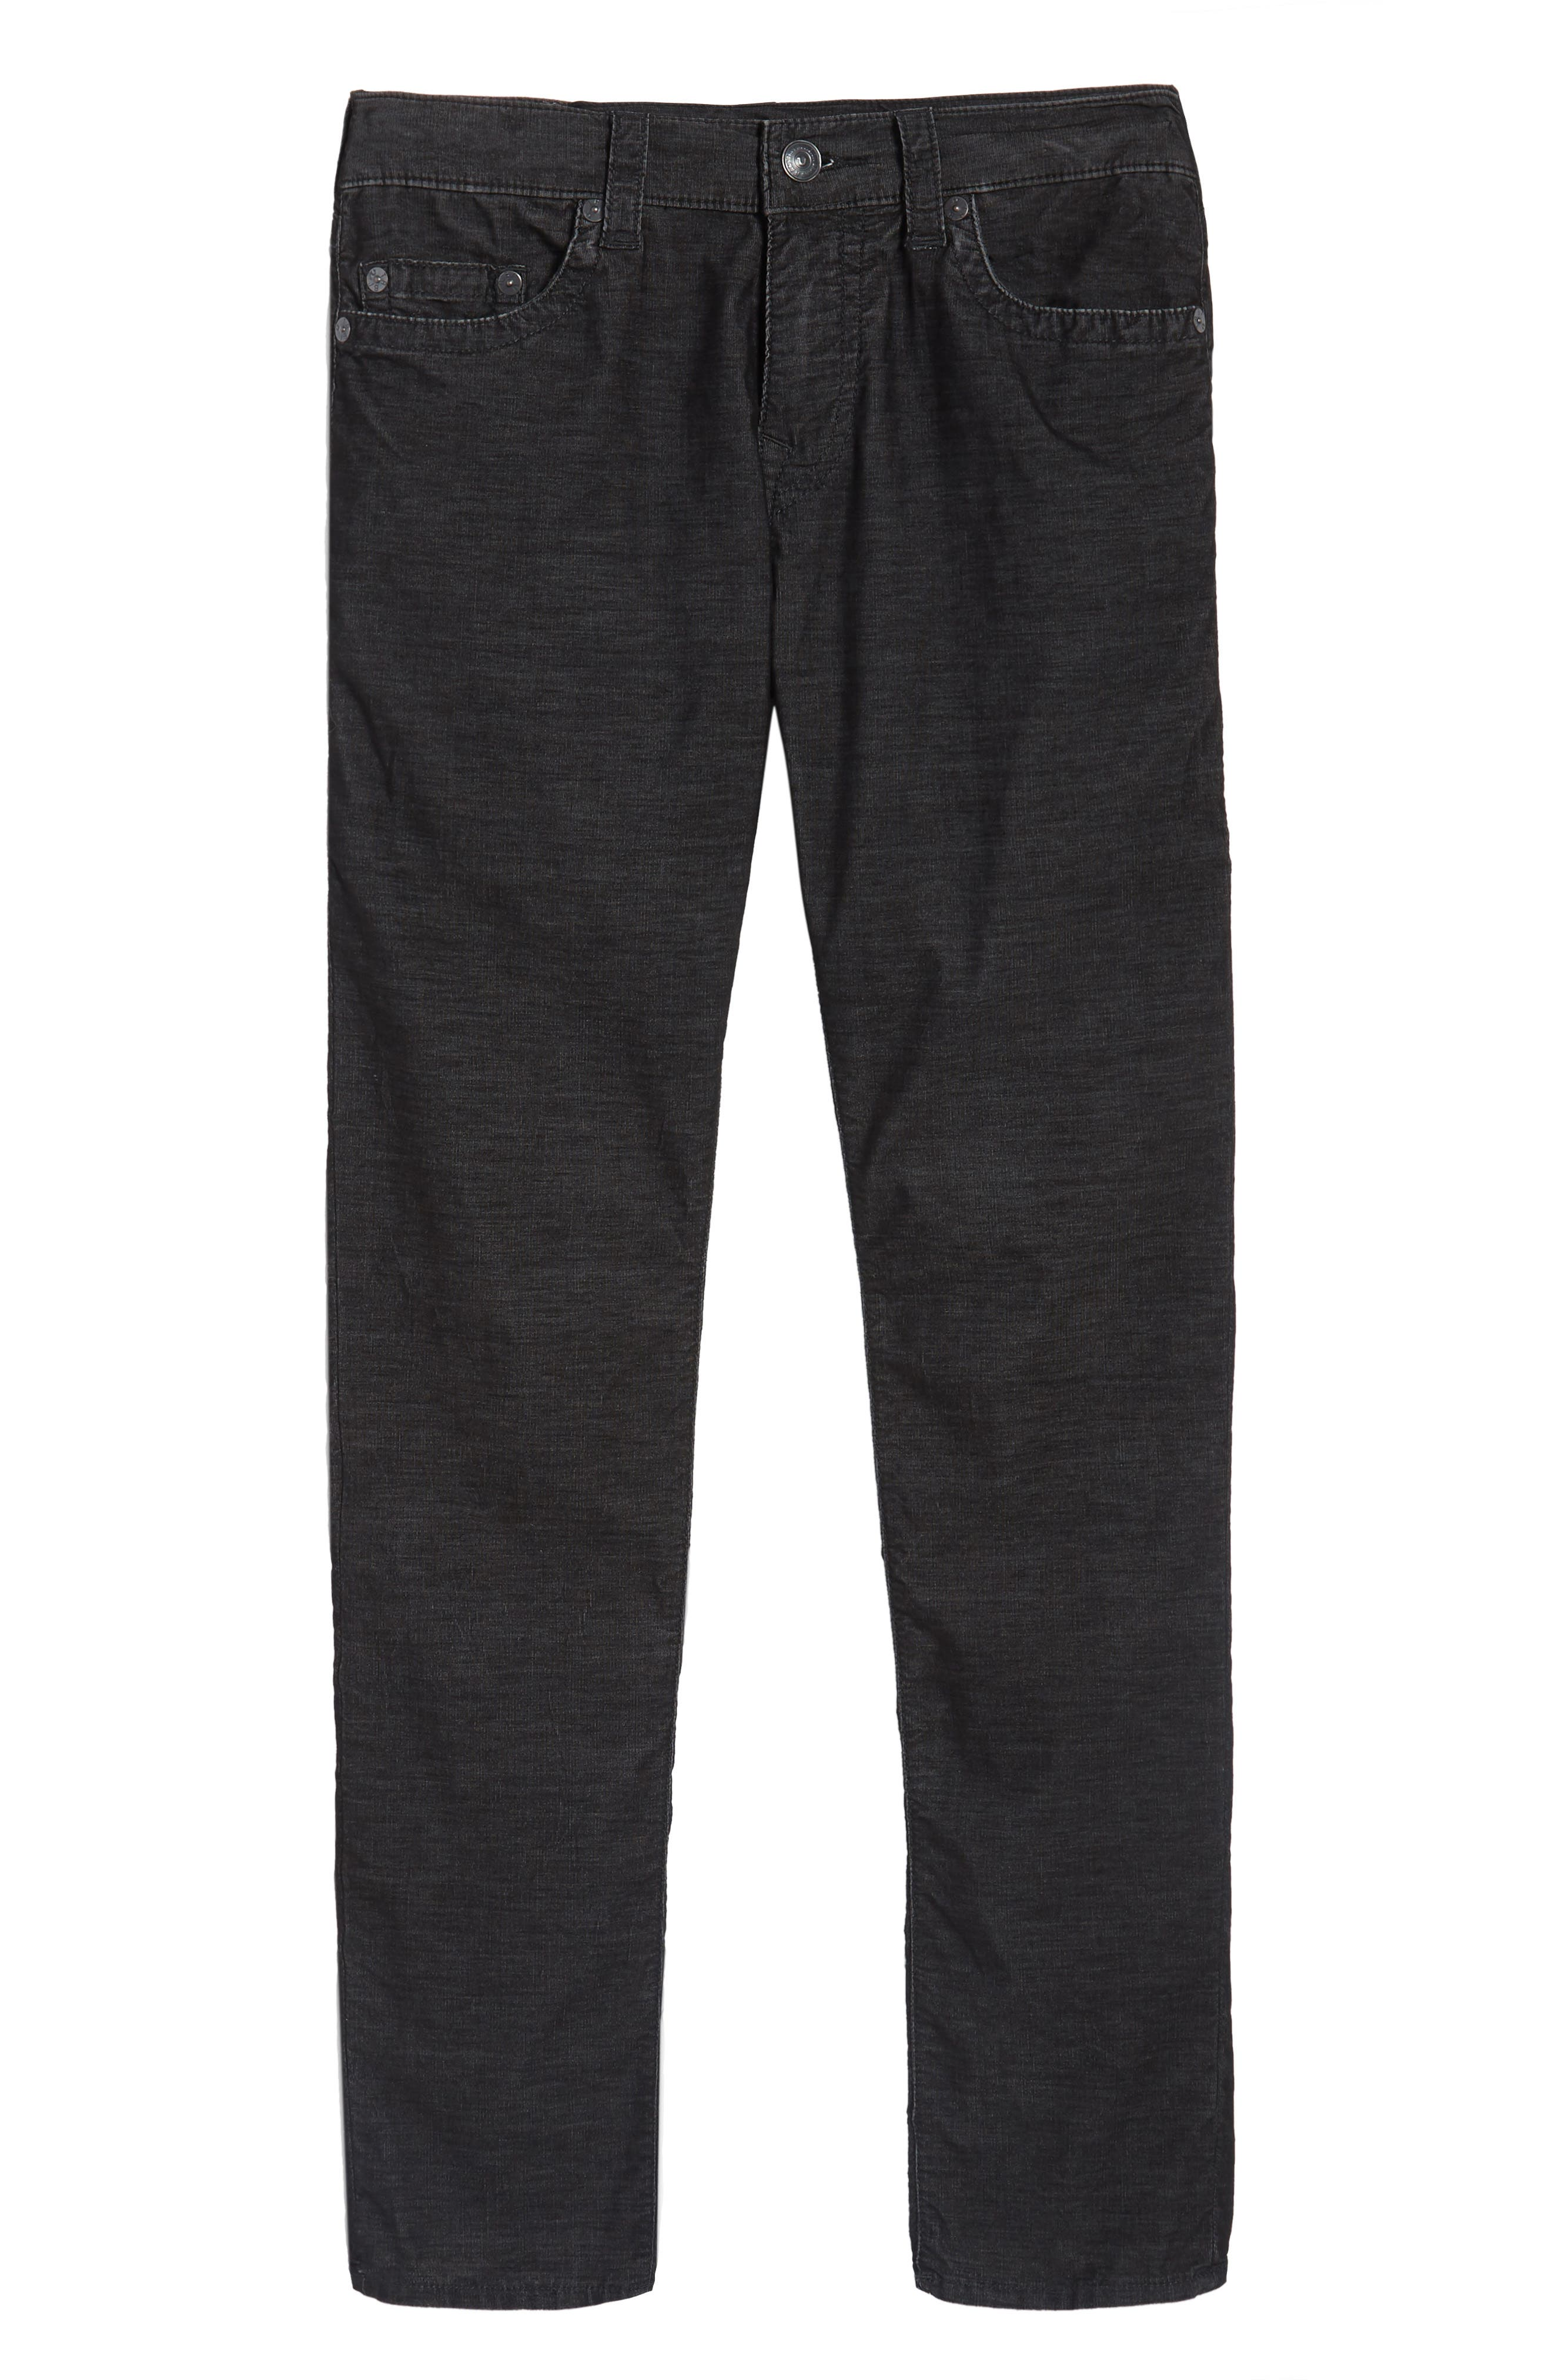 Rocco Skinny Fit Corduroy Jeans,                             Alternate thumbnail 6, color,                             001